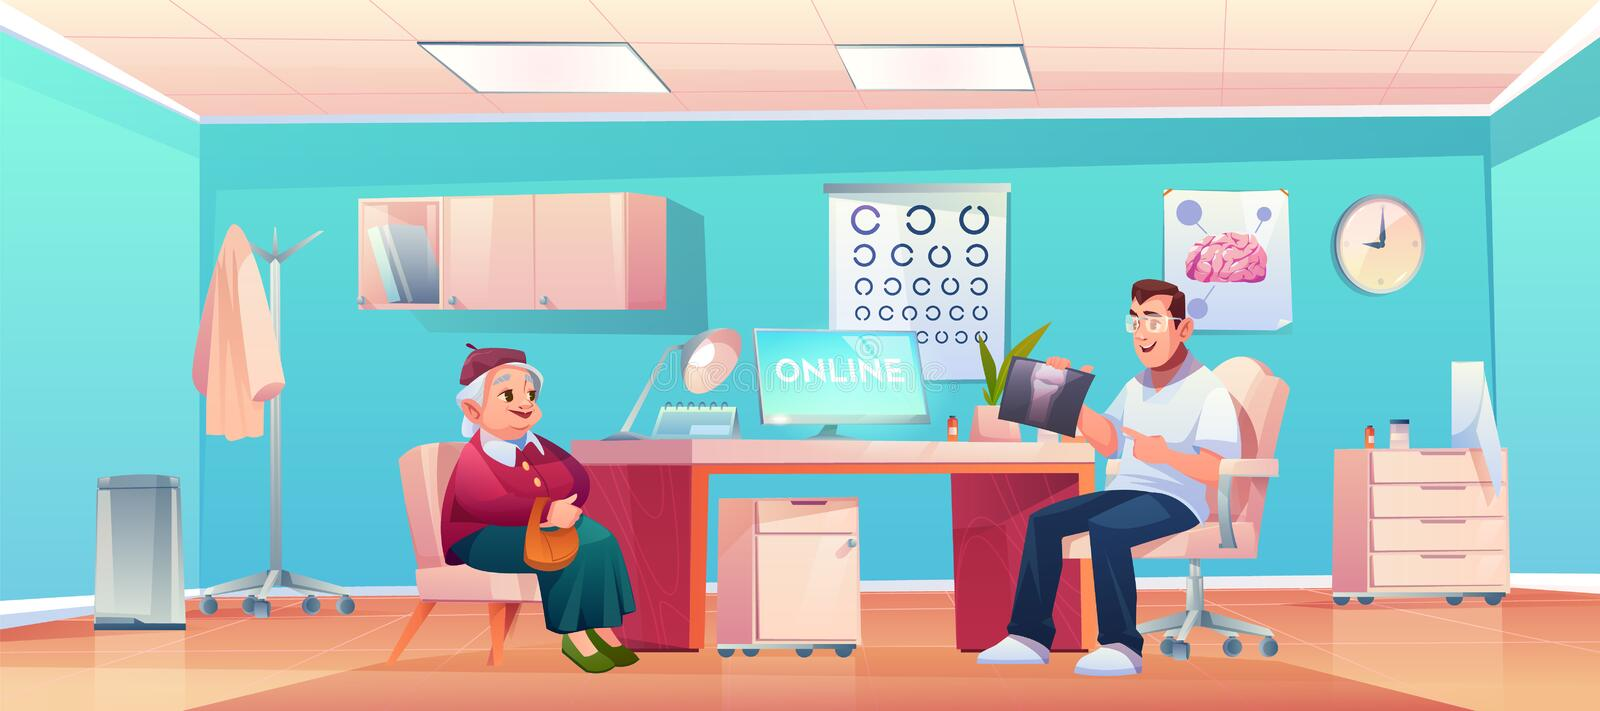 Senior patient at doctor therapist office checkup. Senior patient at doctor therapist office, old lady and man practitioner at hospital medical office or cabinet vector illustration